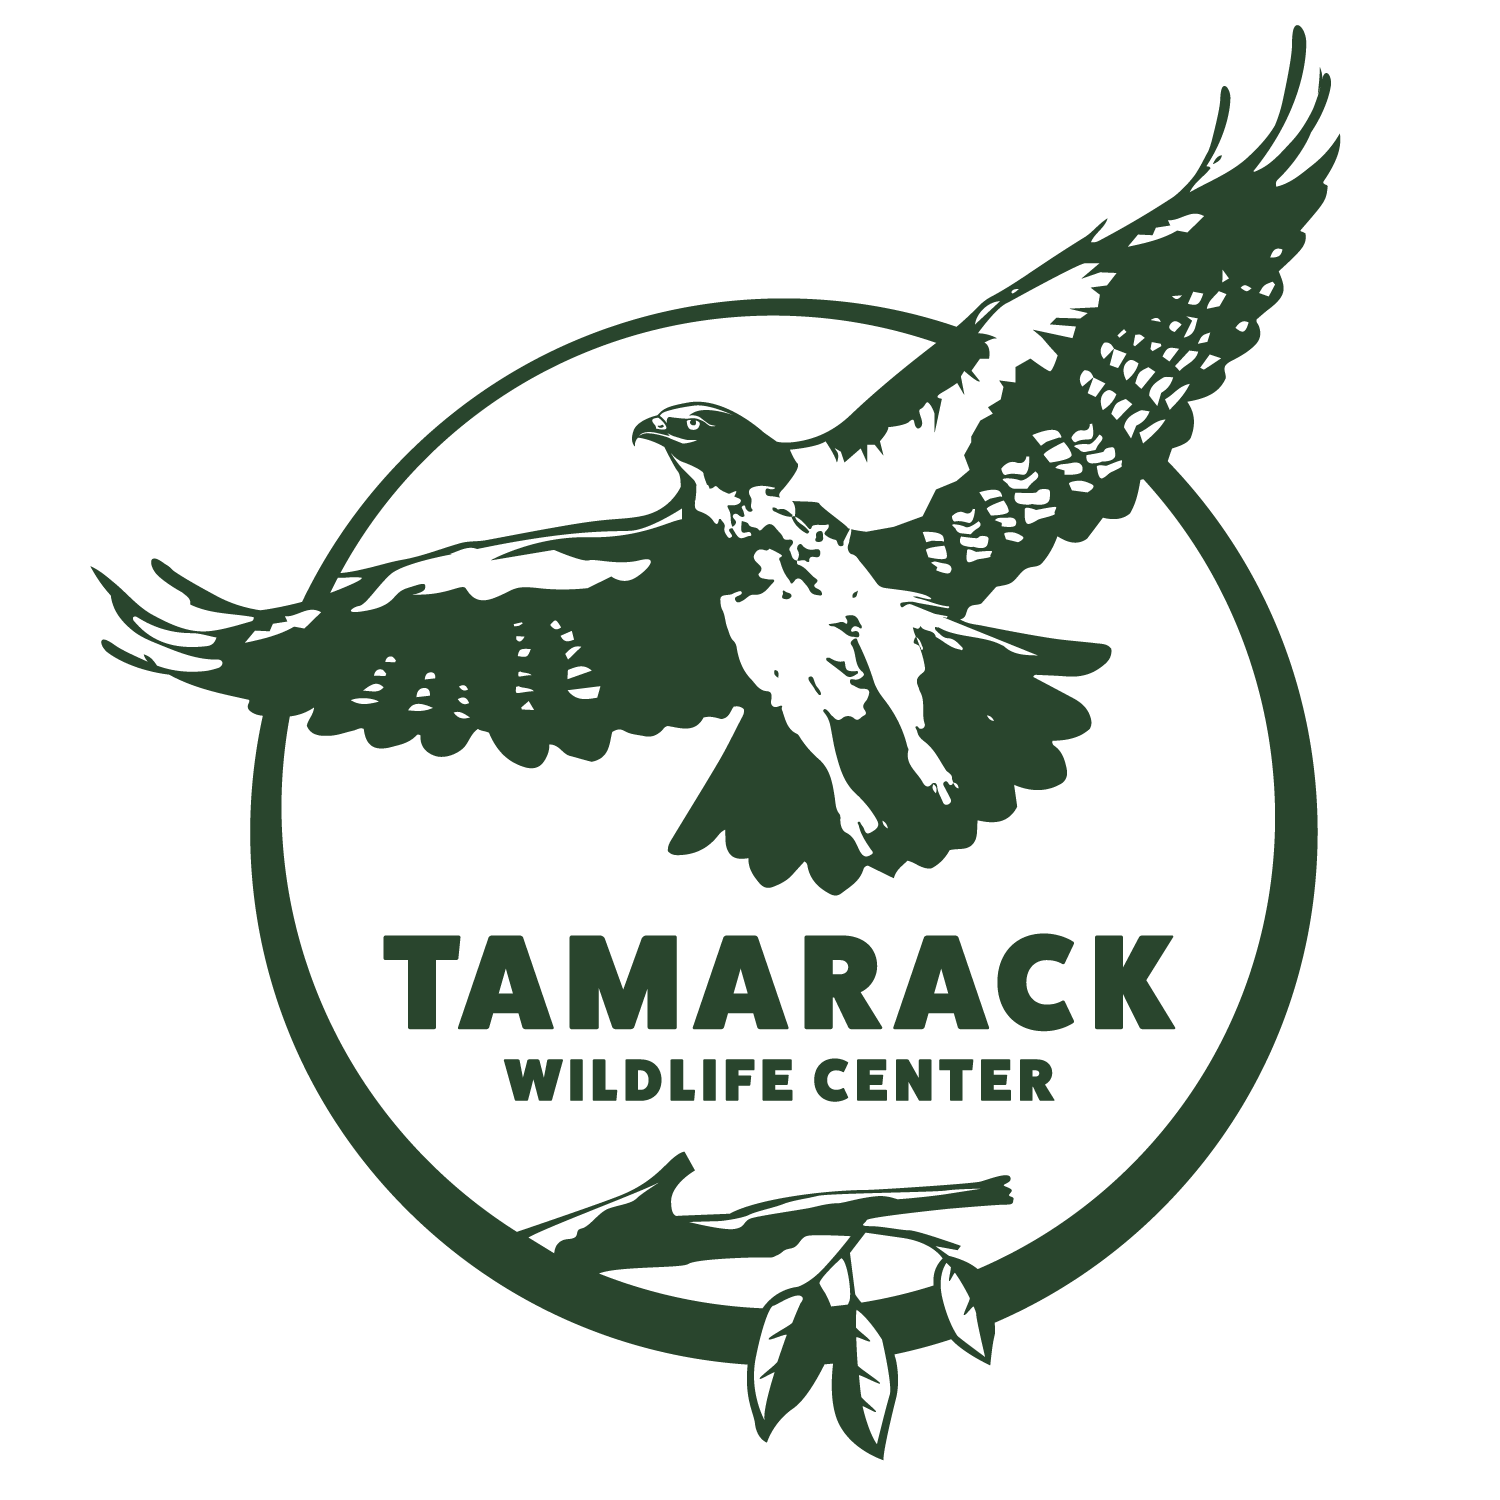 Tamarack Wildlife Center